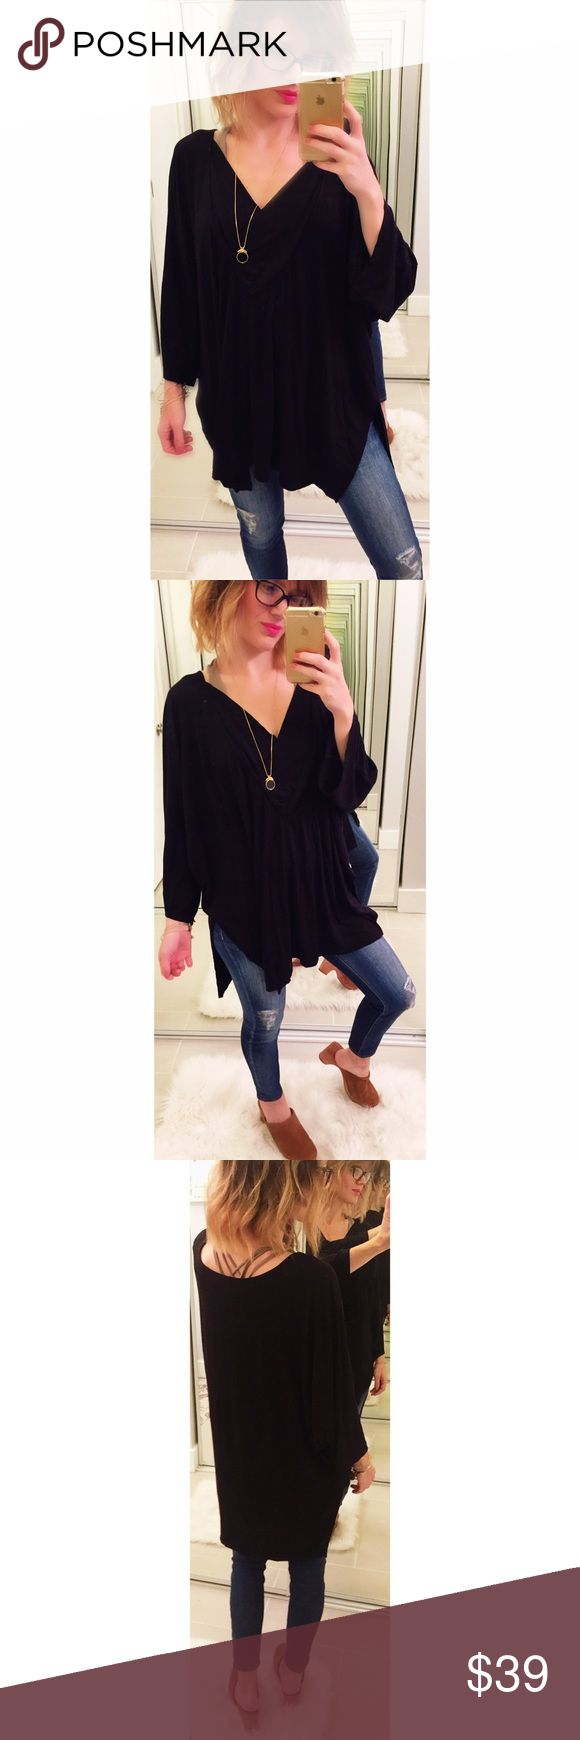 ➡️Rachel Pally Black Tunic⬅️ Such a boholicious tunic for your effortless style. No size tag, but it fits like a small/medium. 💕Offers welcome. Take 30% off your entire purchaseHi automatically at checkout when you use the bundle feature, or ask me to create a custom bundle for you. Happy Poshing!💕 Rachel Pally Tops Tunics